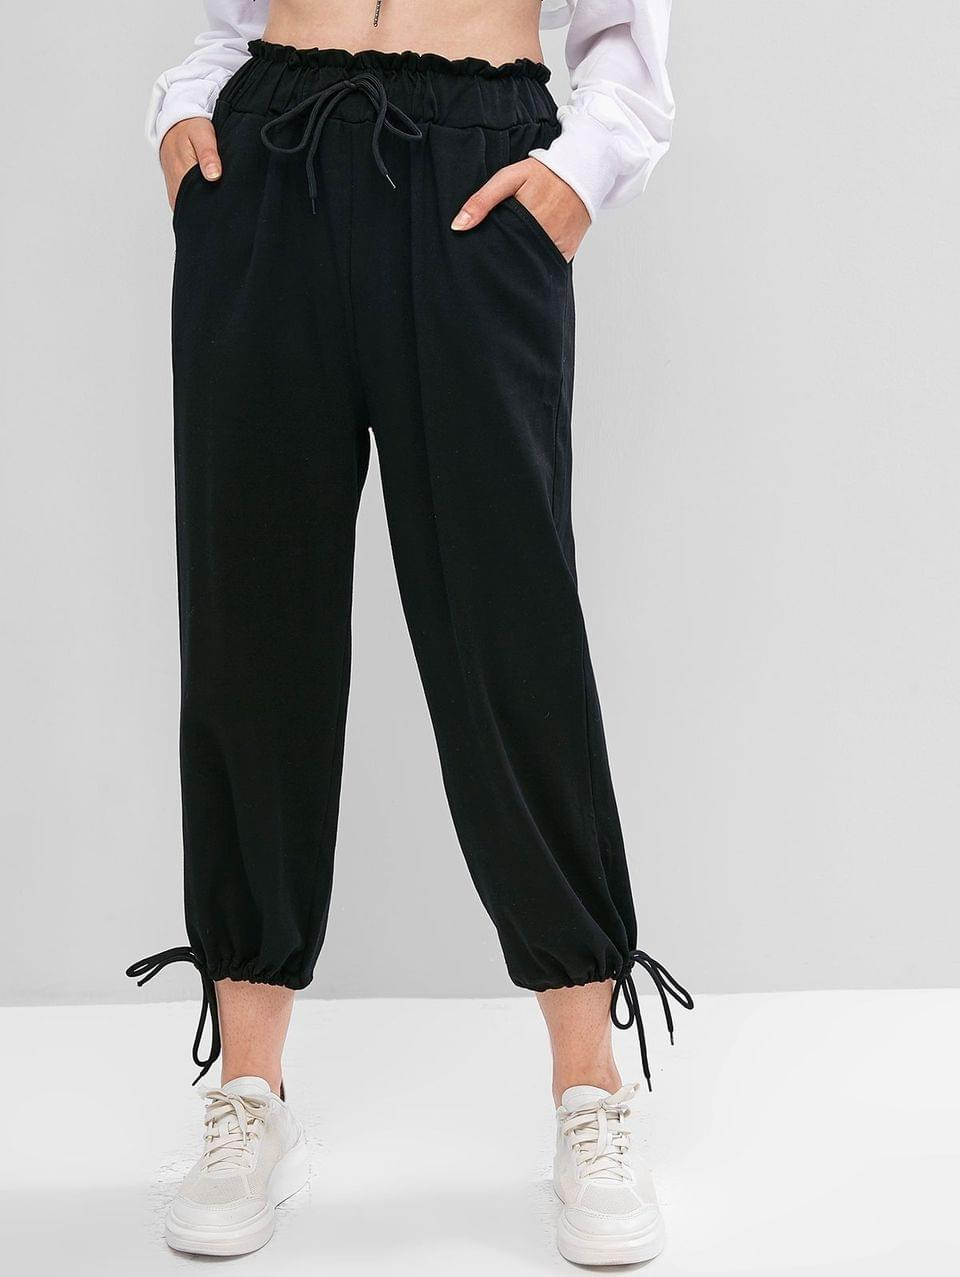 Women's Drawstring Cuffs Pocket High Waisted Crop Pants - Black